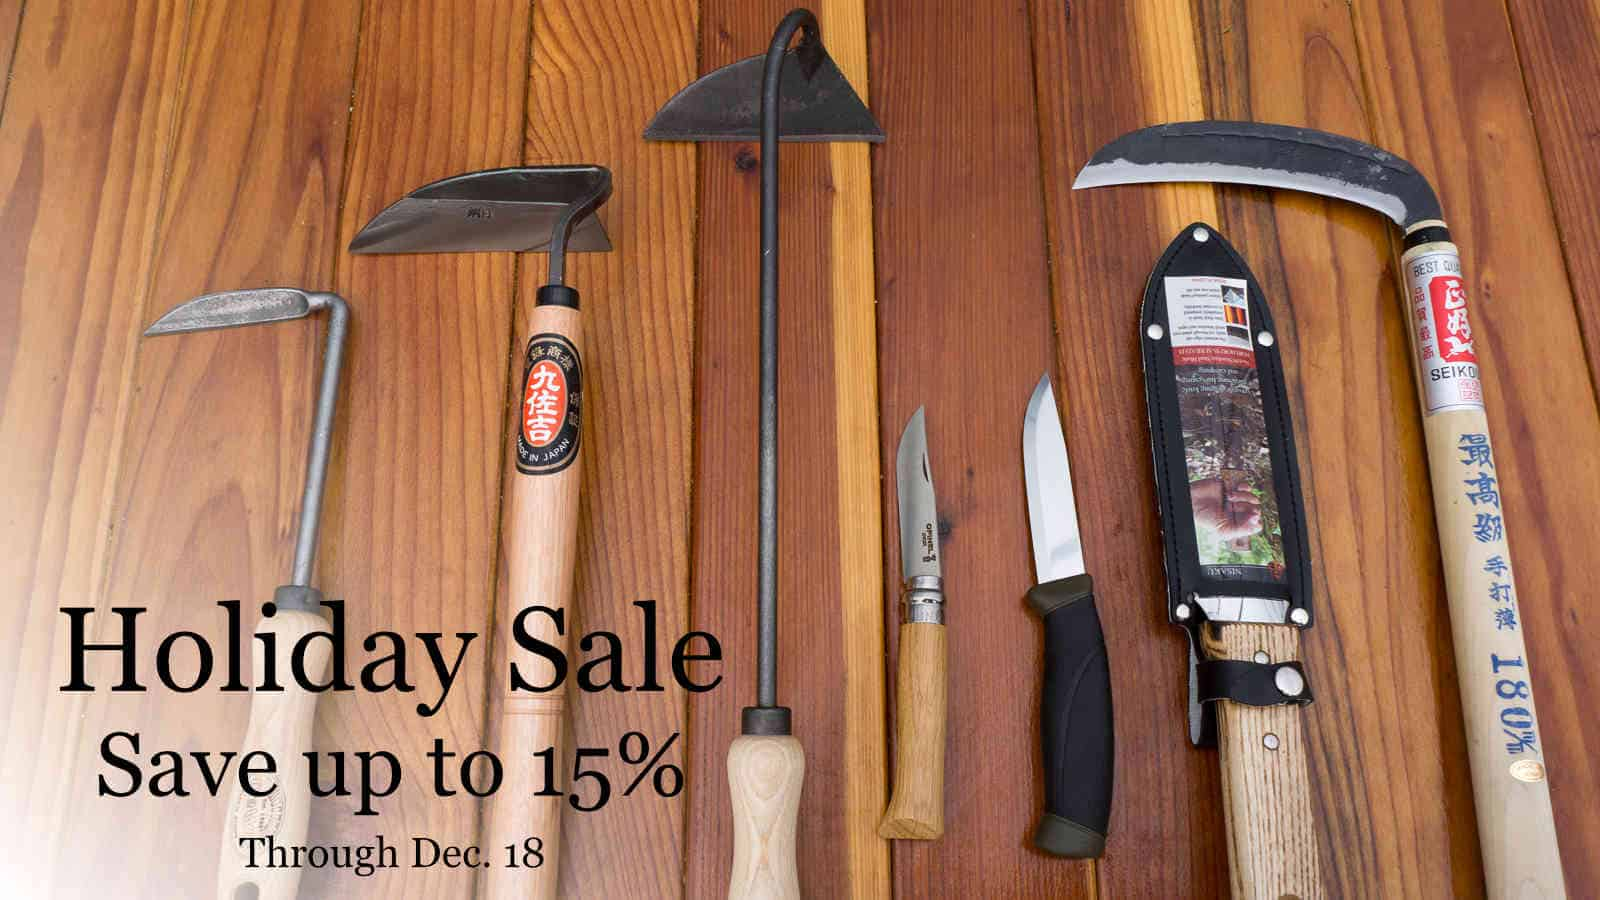 Quality garden tools on sale gear forum at permies for Gardening tools on sale